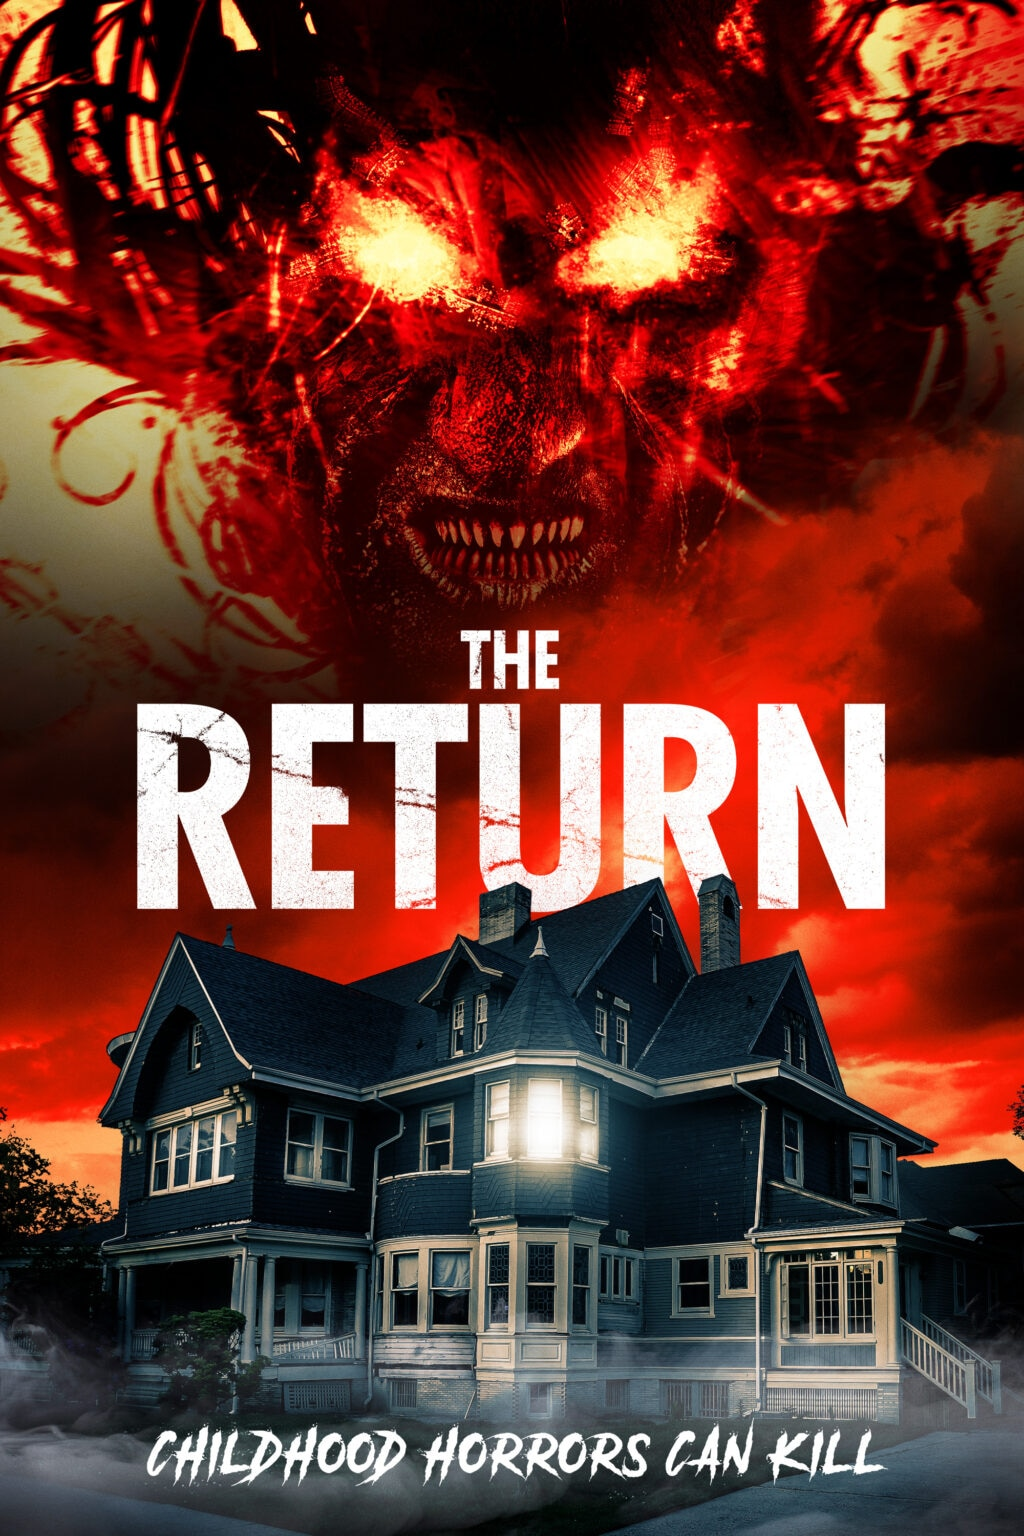 TheReturn KeyArt 2x3 2000x3000 1024x1536 - Evil Entity Stalks Family in Scary Trailer for Haunted House Horror THE RETURN